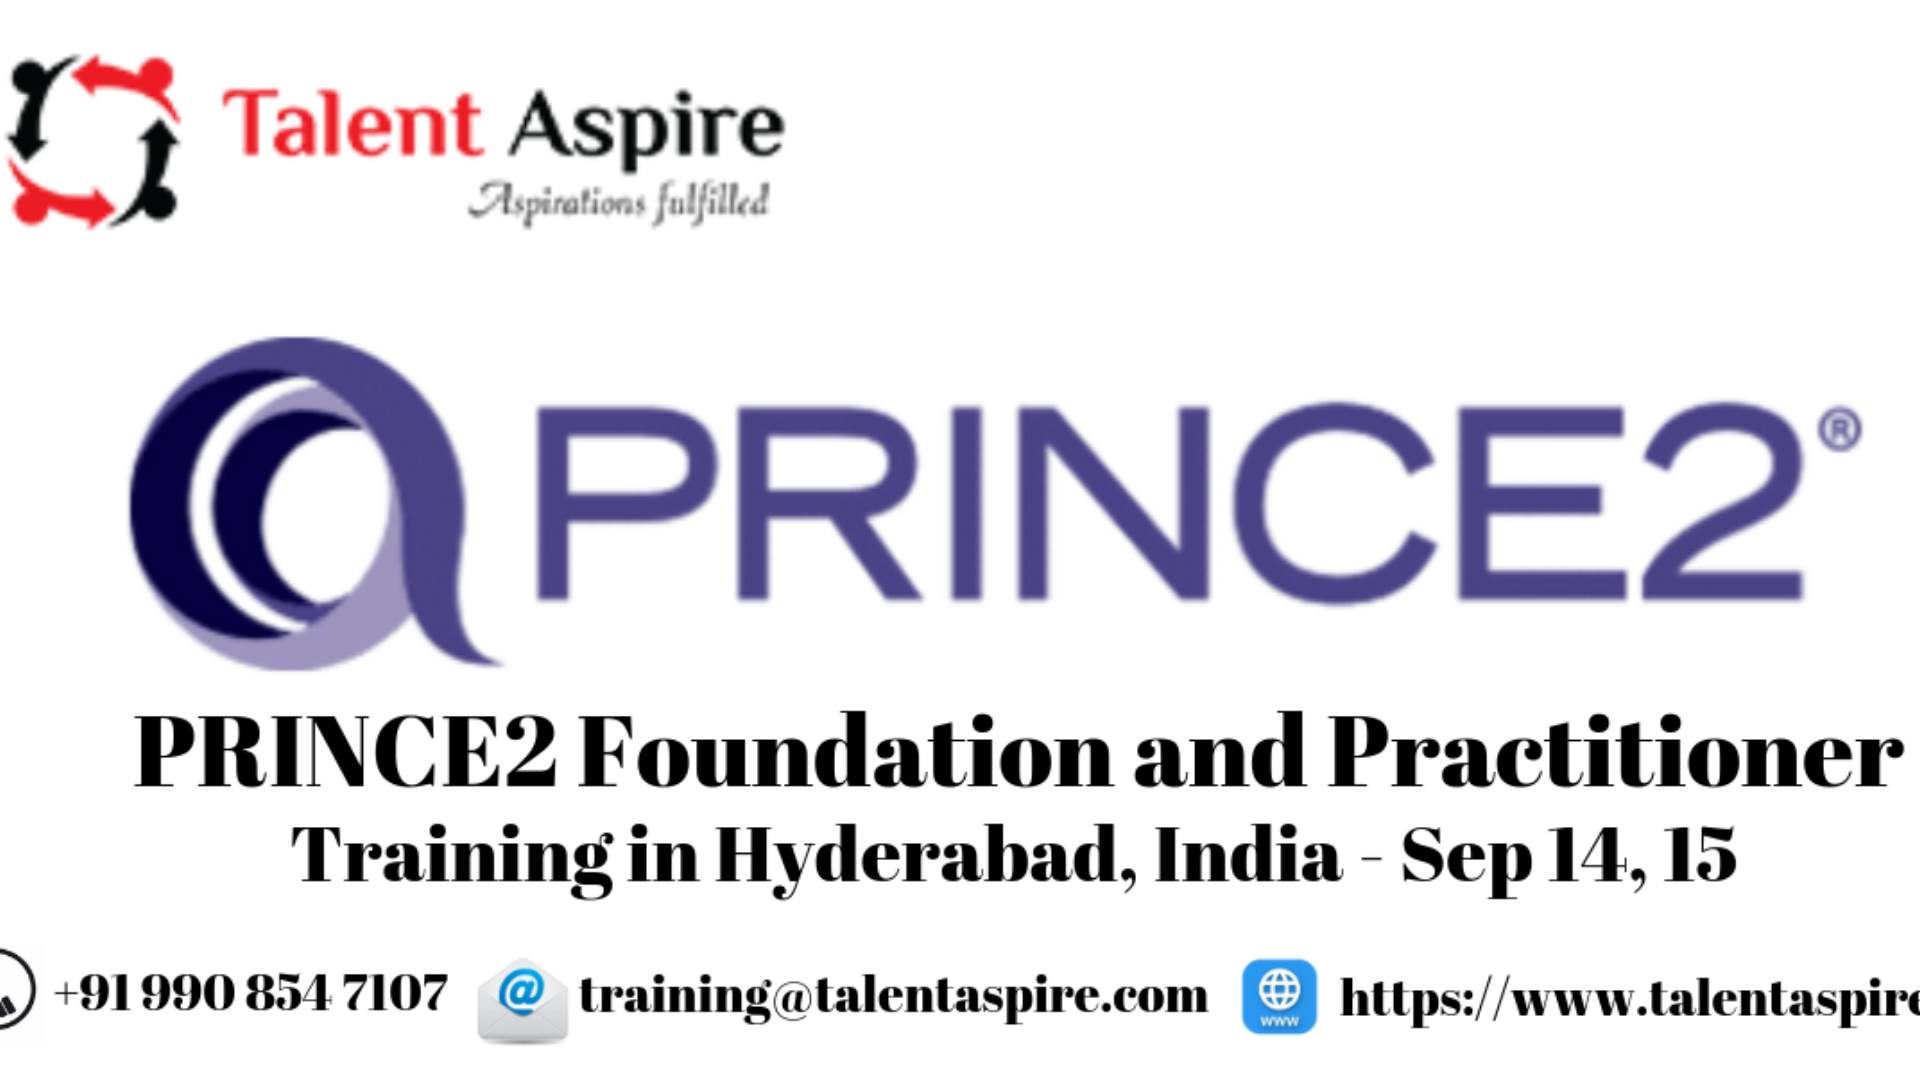 PRINCE2 Foundation and Practitioner Training in Hyderabad